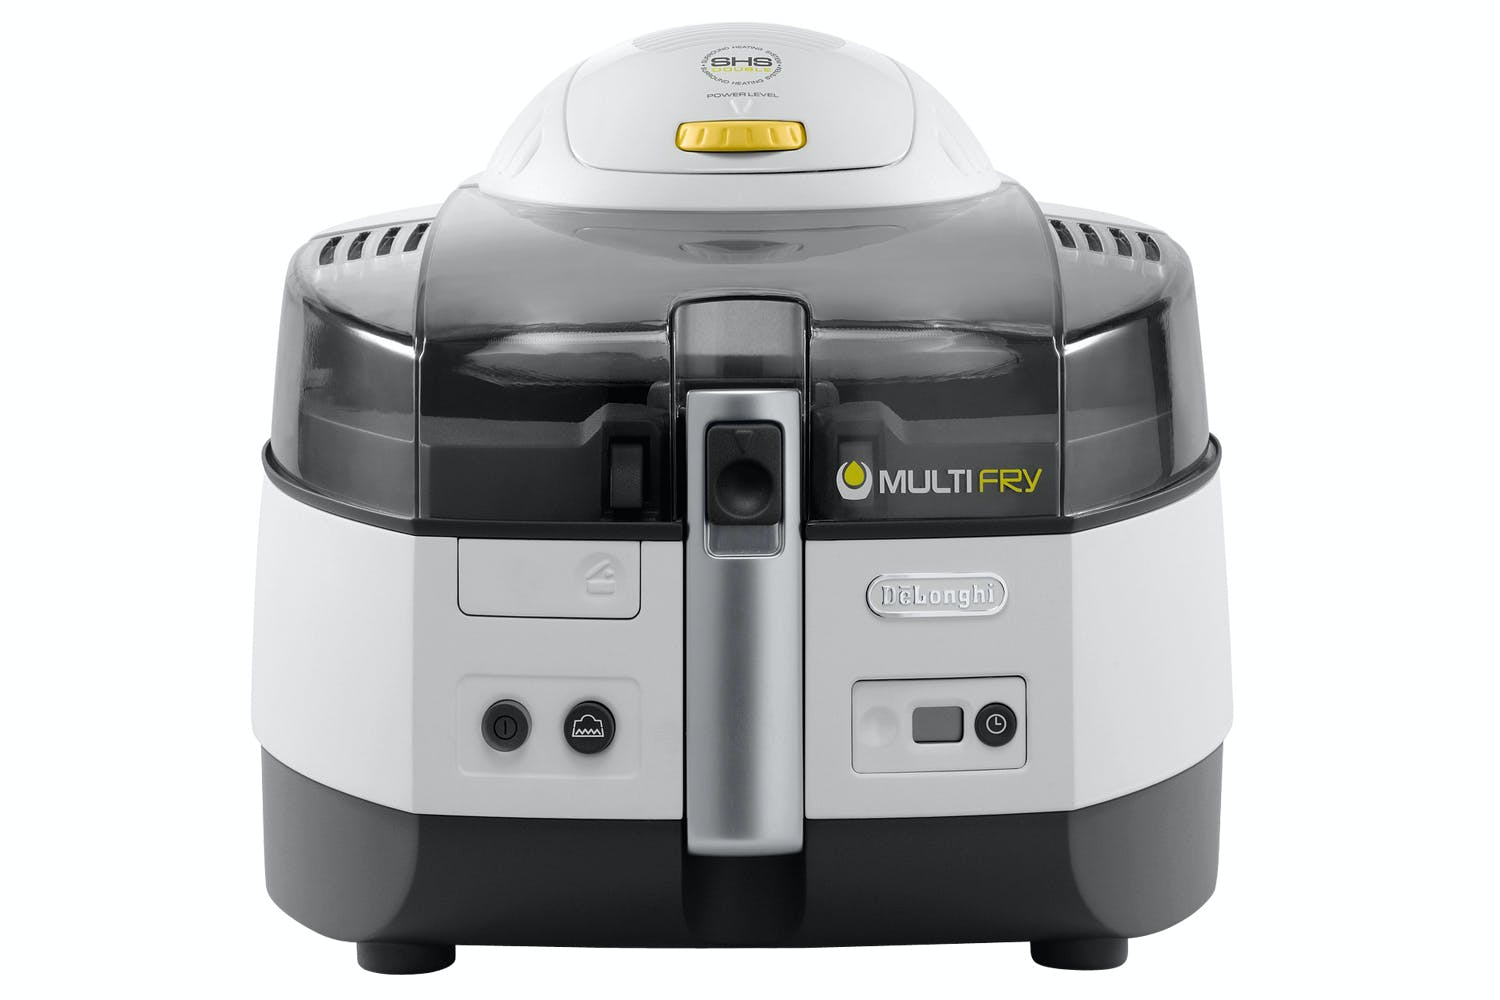 DeLonghi Multifry Extra Low Oil Chip Fryer | FH1363